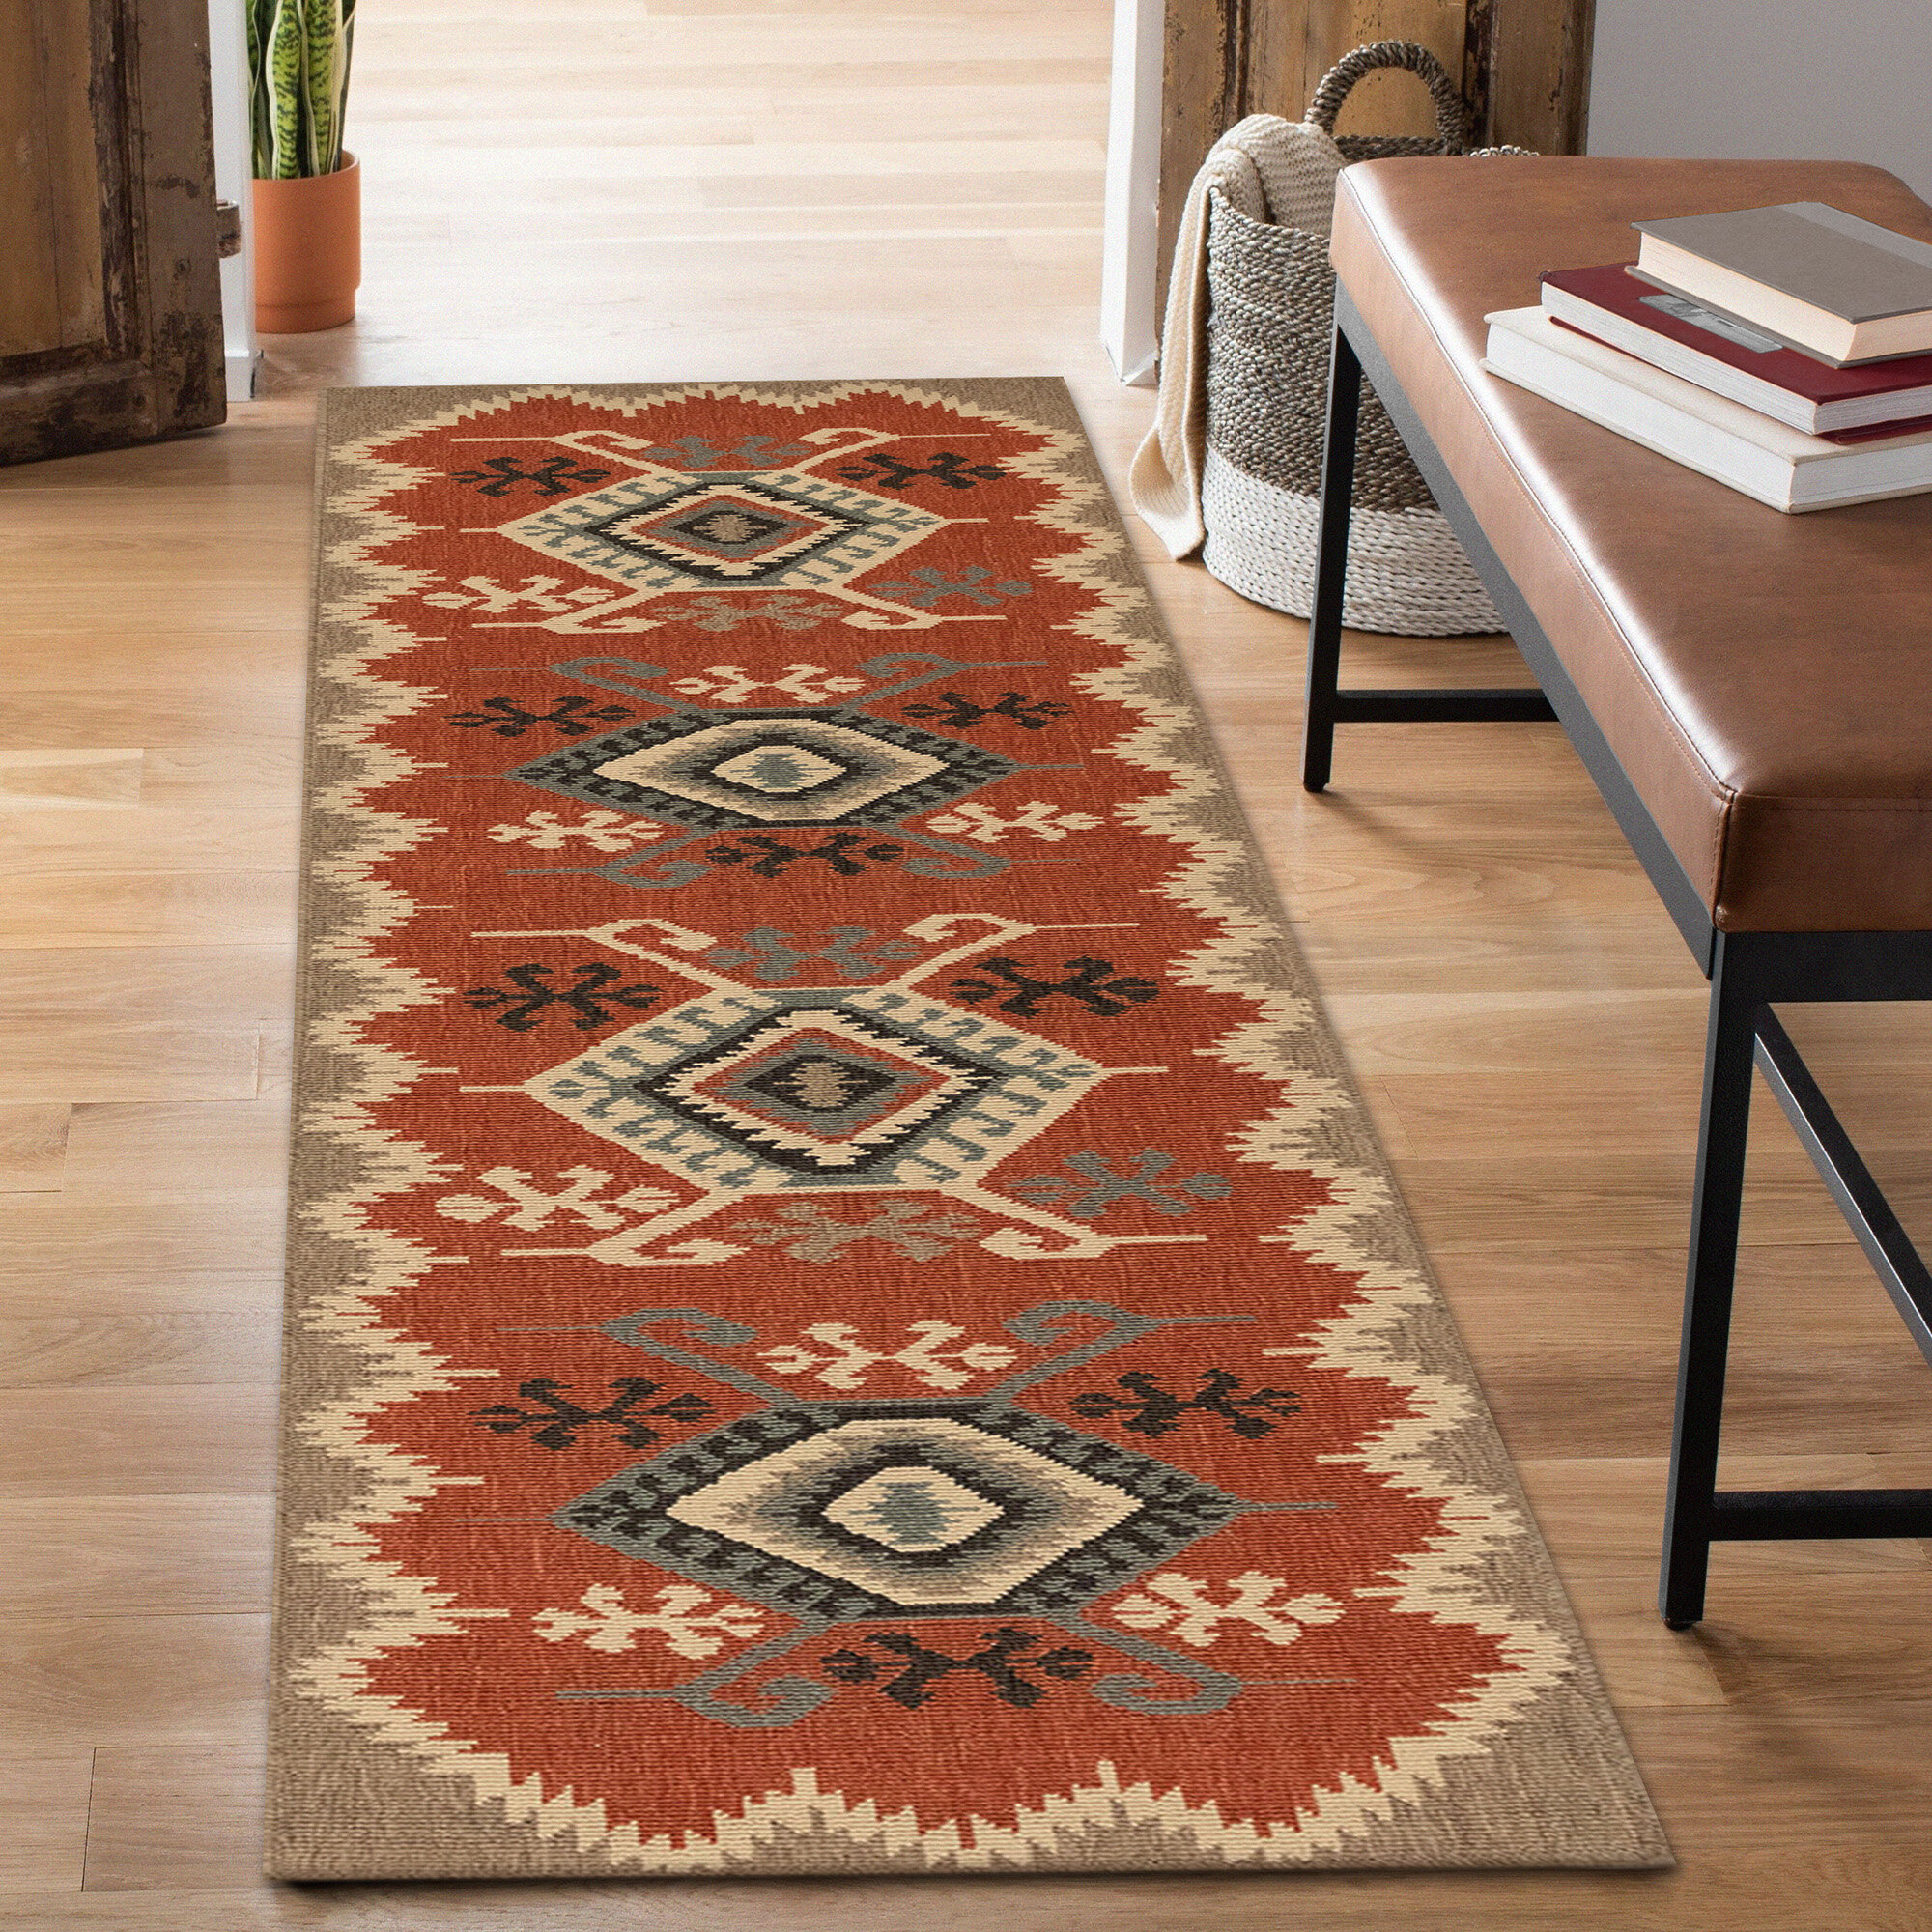 Here's how to buy the most attractive and durable carpet runners and rugs for your hallway